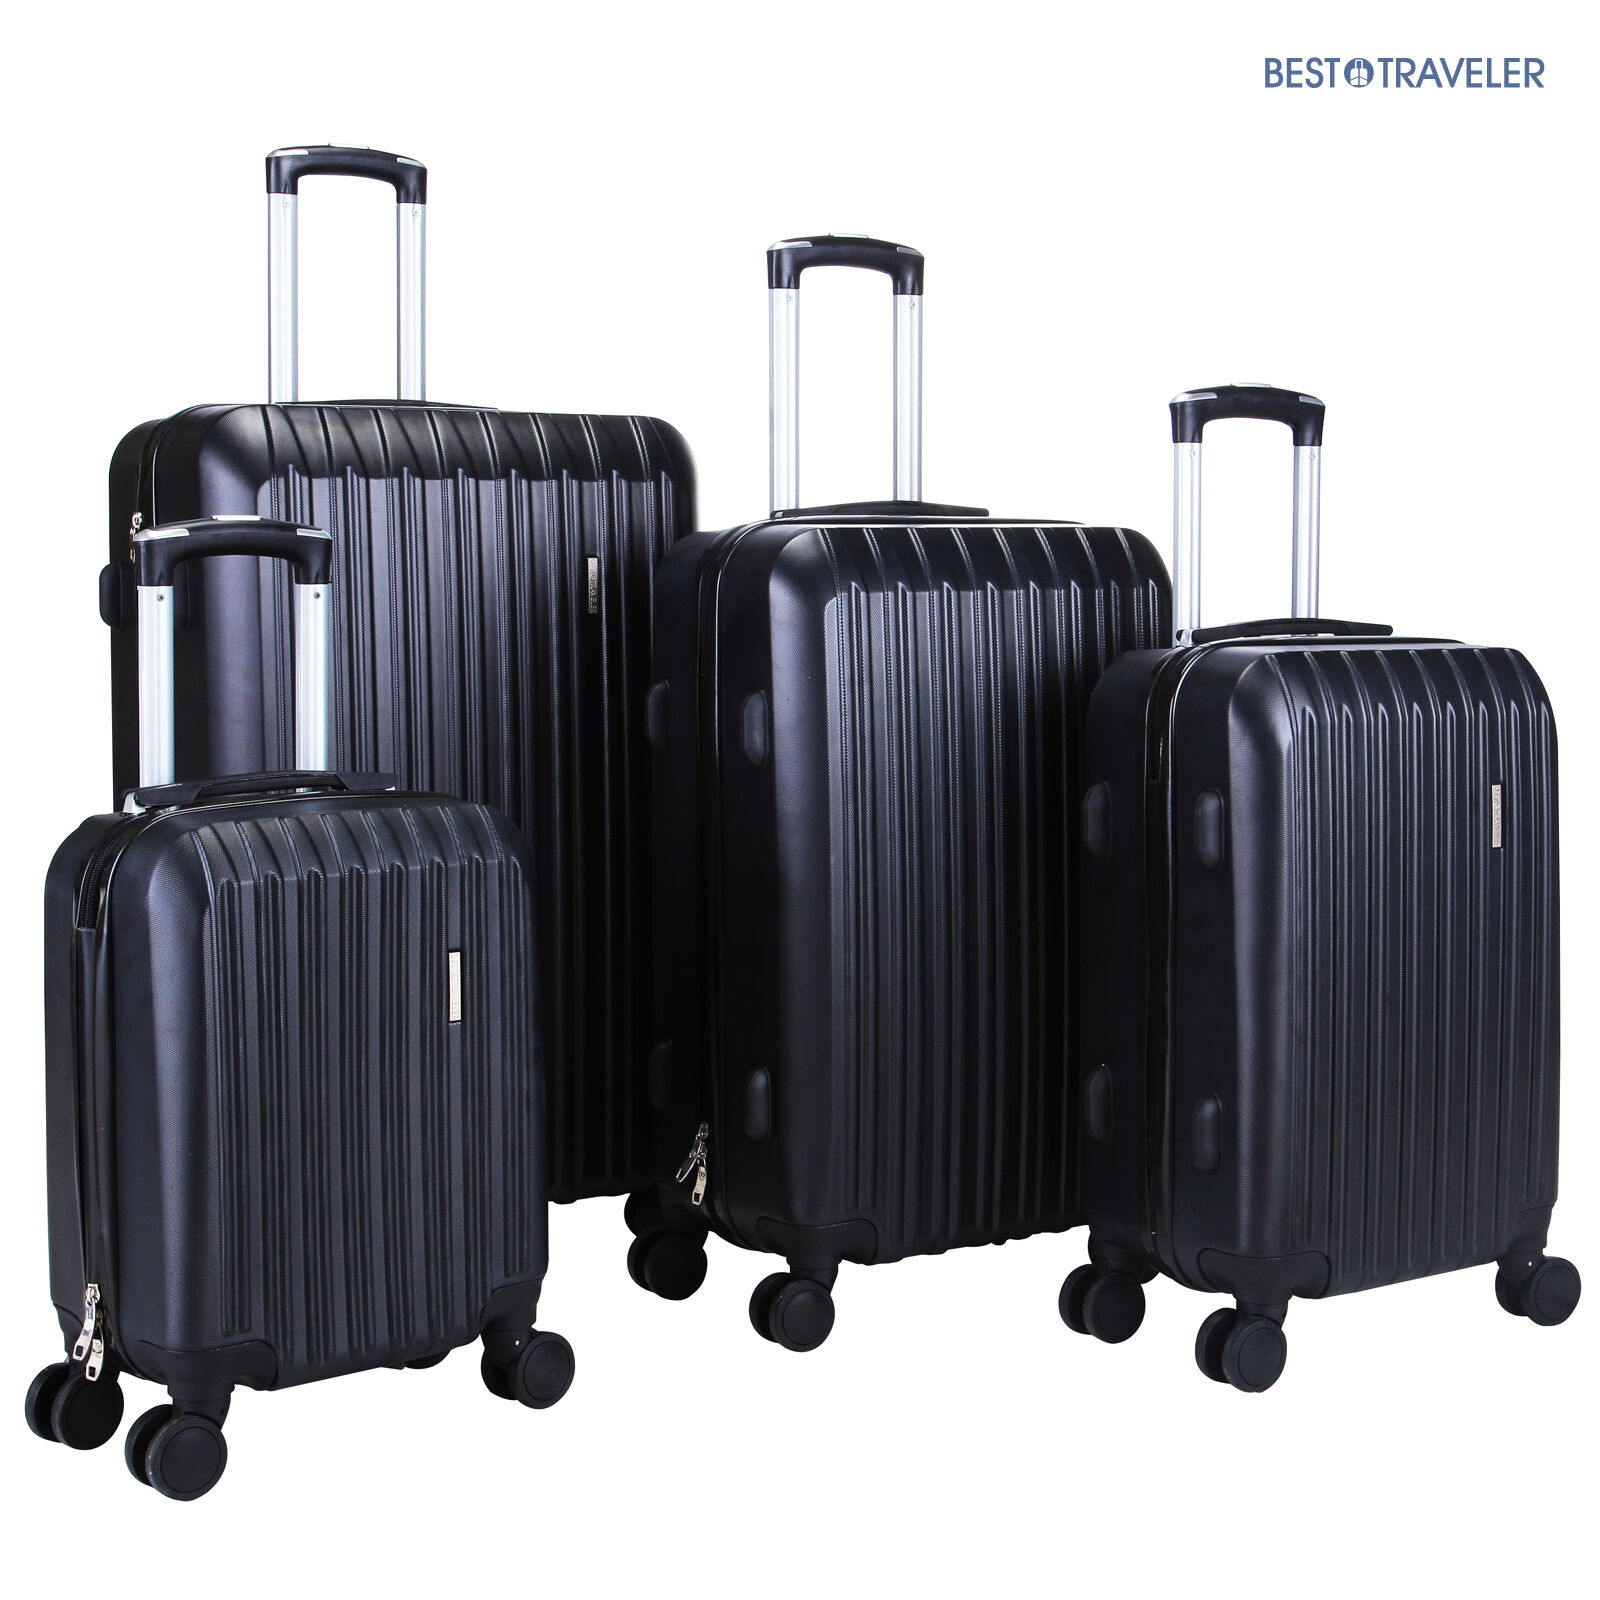 Изображение товара 4Pcs Luggage Travel Set Bag ABS Trolley Spinner Carry On Suitcase TSA Lock Black